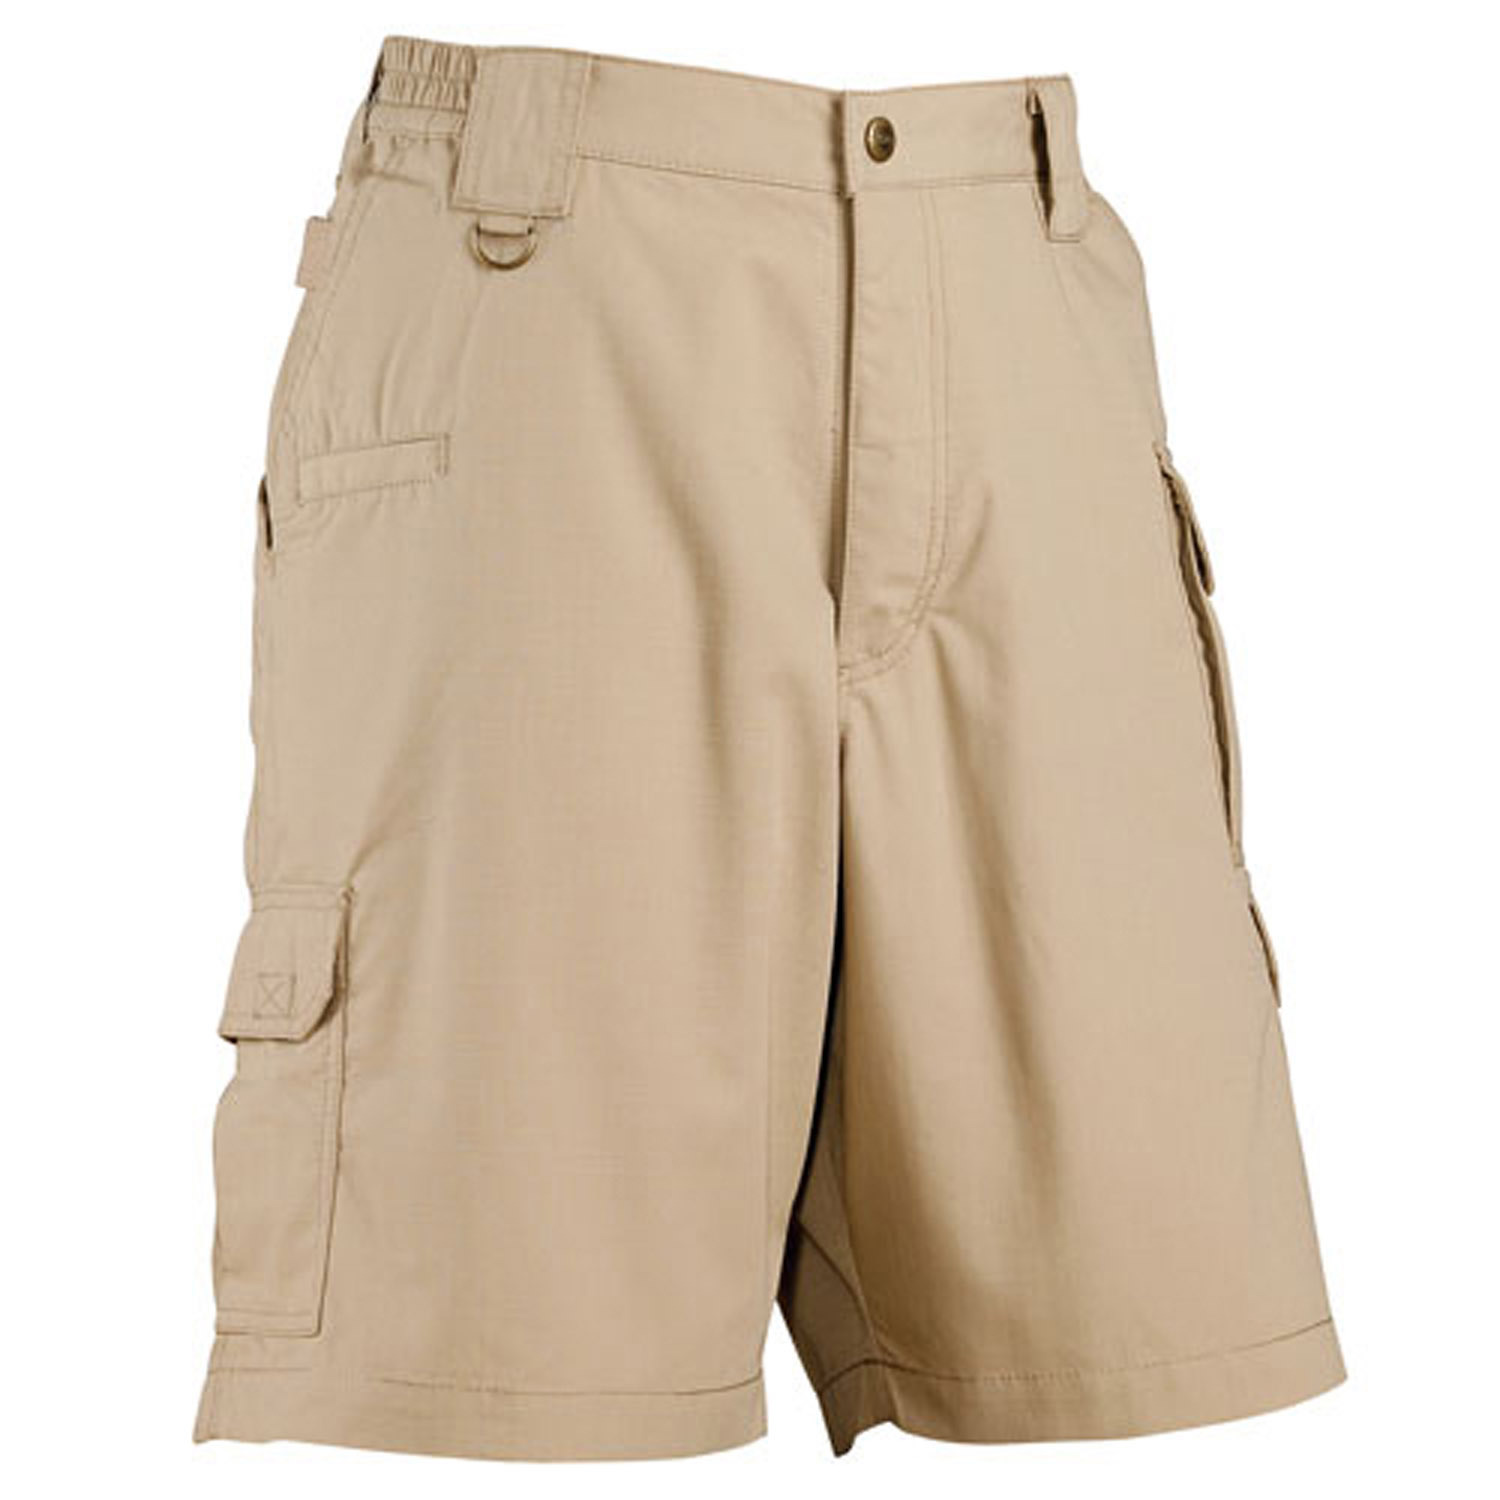 5.11 Tactical Mens Taclite Pro 9.5-Inch Shorts Lightweight Breathable Poly-Cotton Style 73287